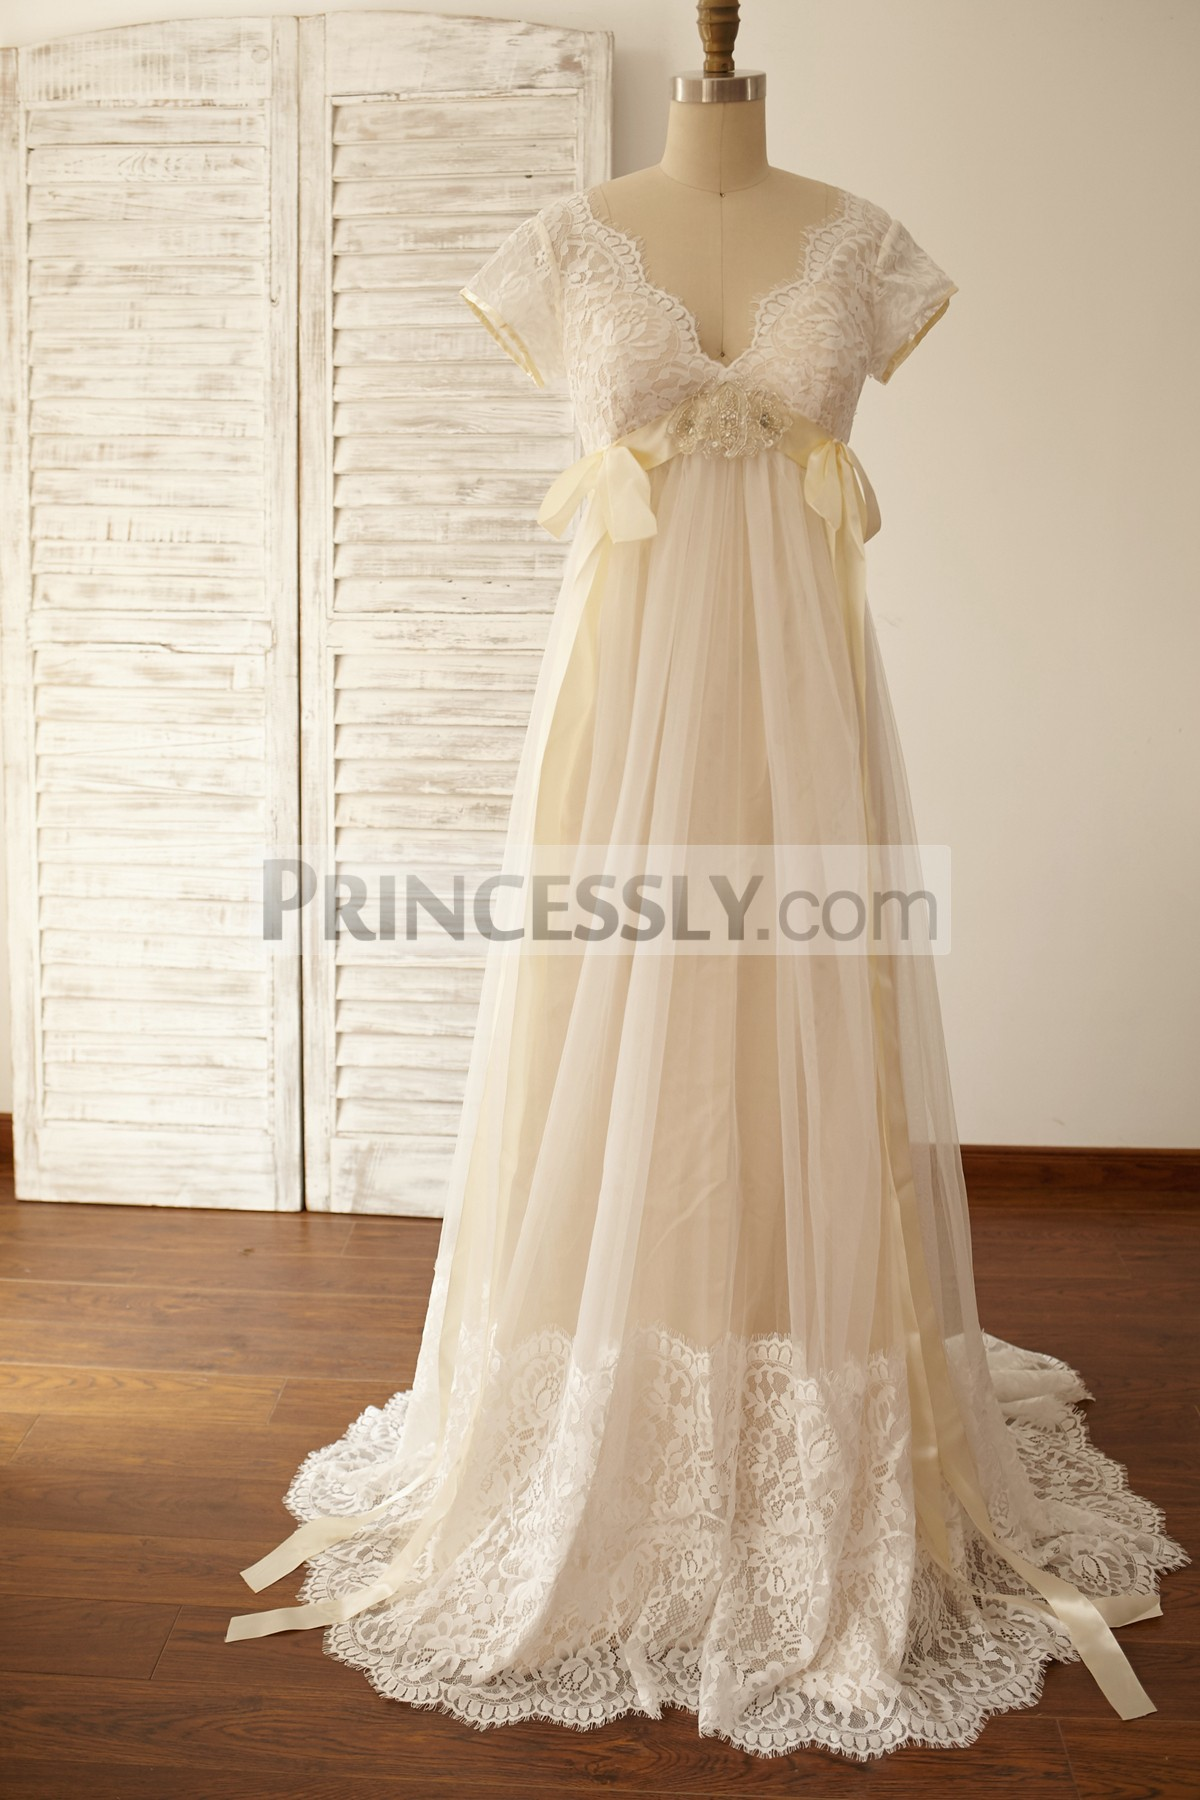 Princessly.com-K1000056-Empire Waist Maternity Cap Sleeves Lace Tulle Wedding Dress-31